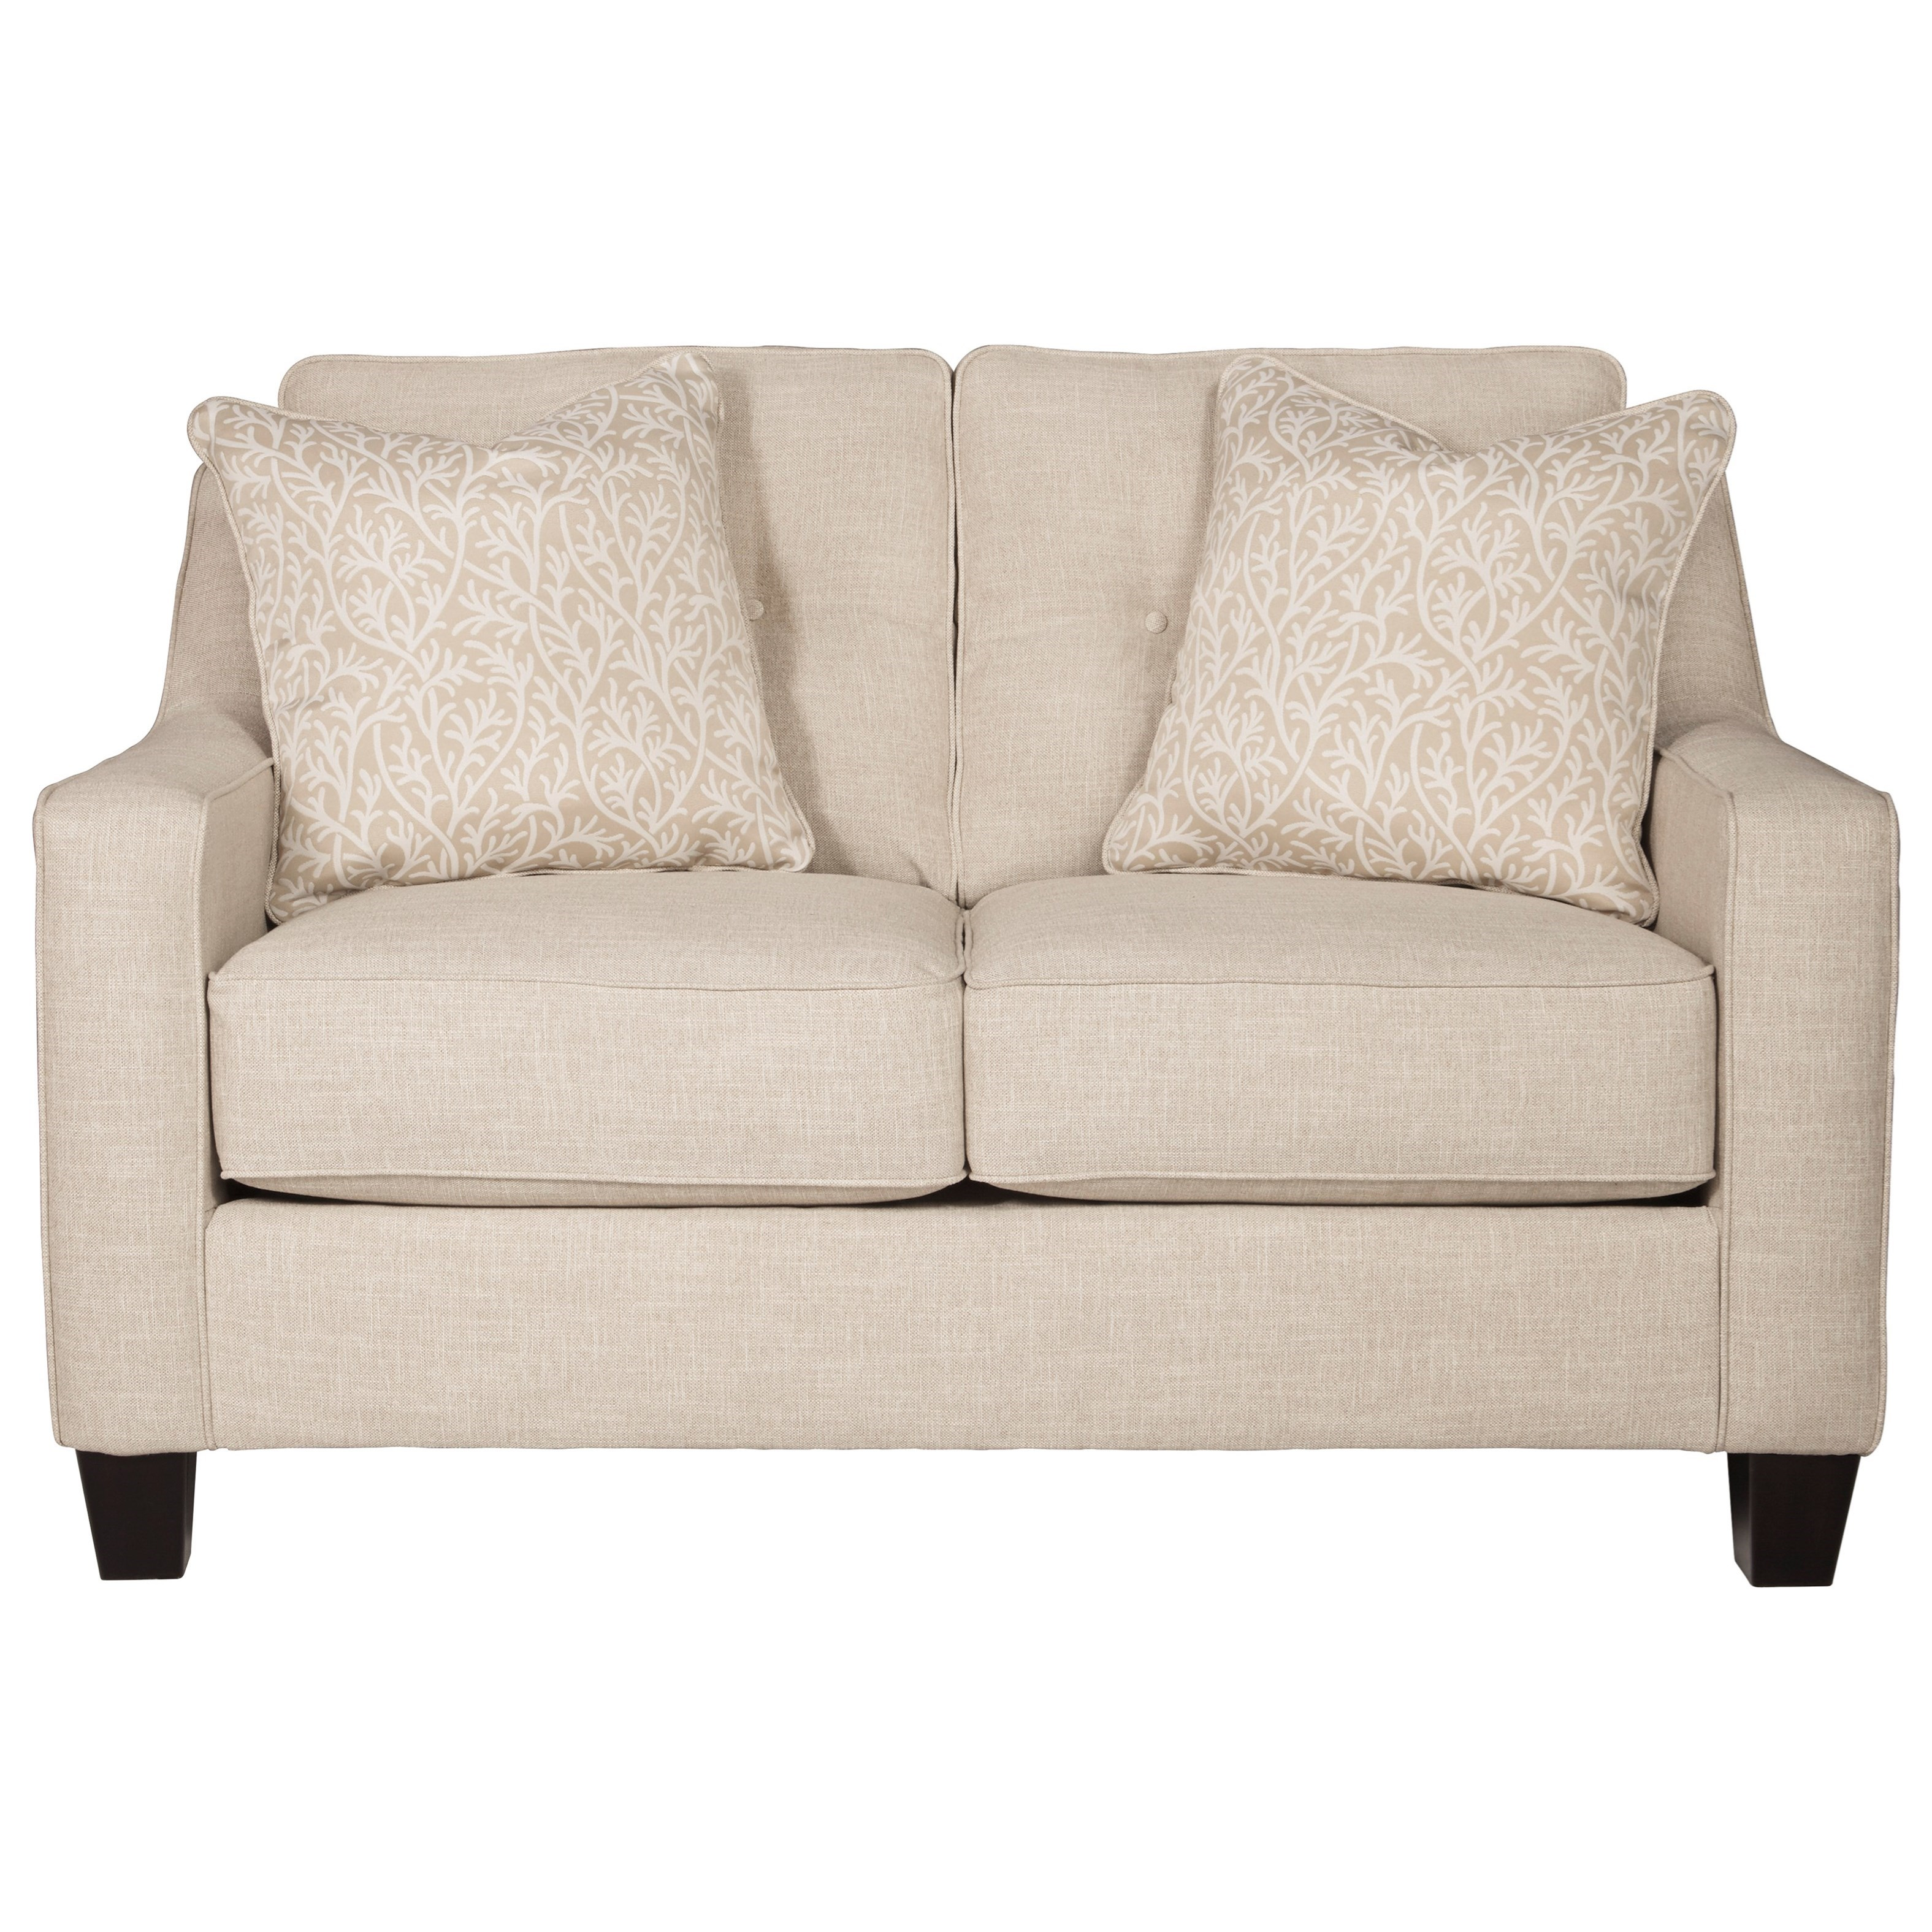 Benchcraft Aldie Nuvella Loveseat - Item Number: 6870535